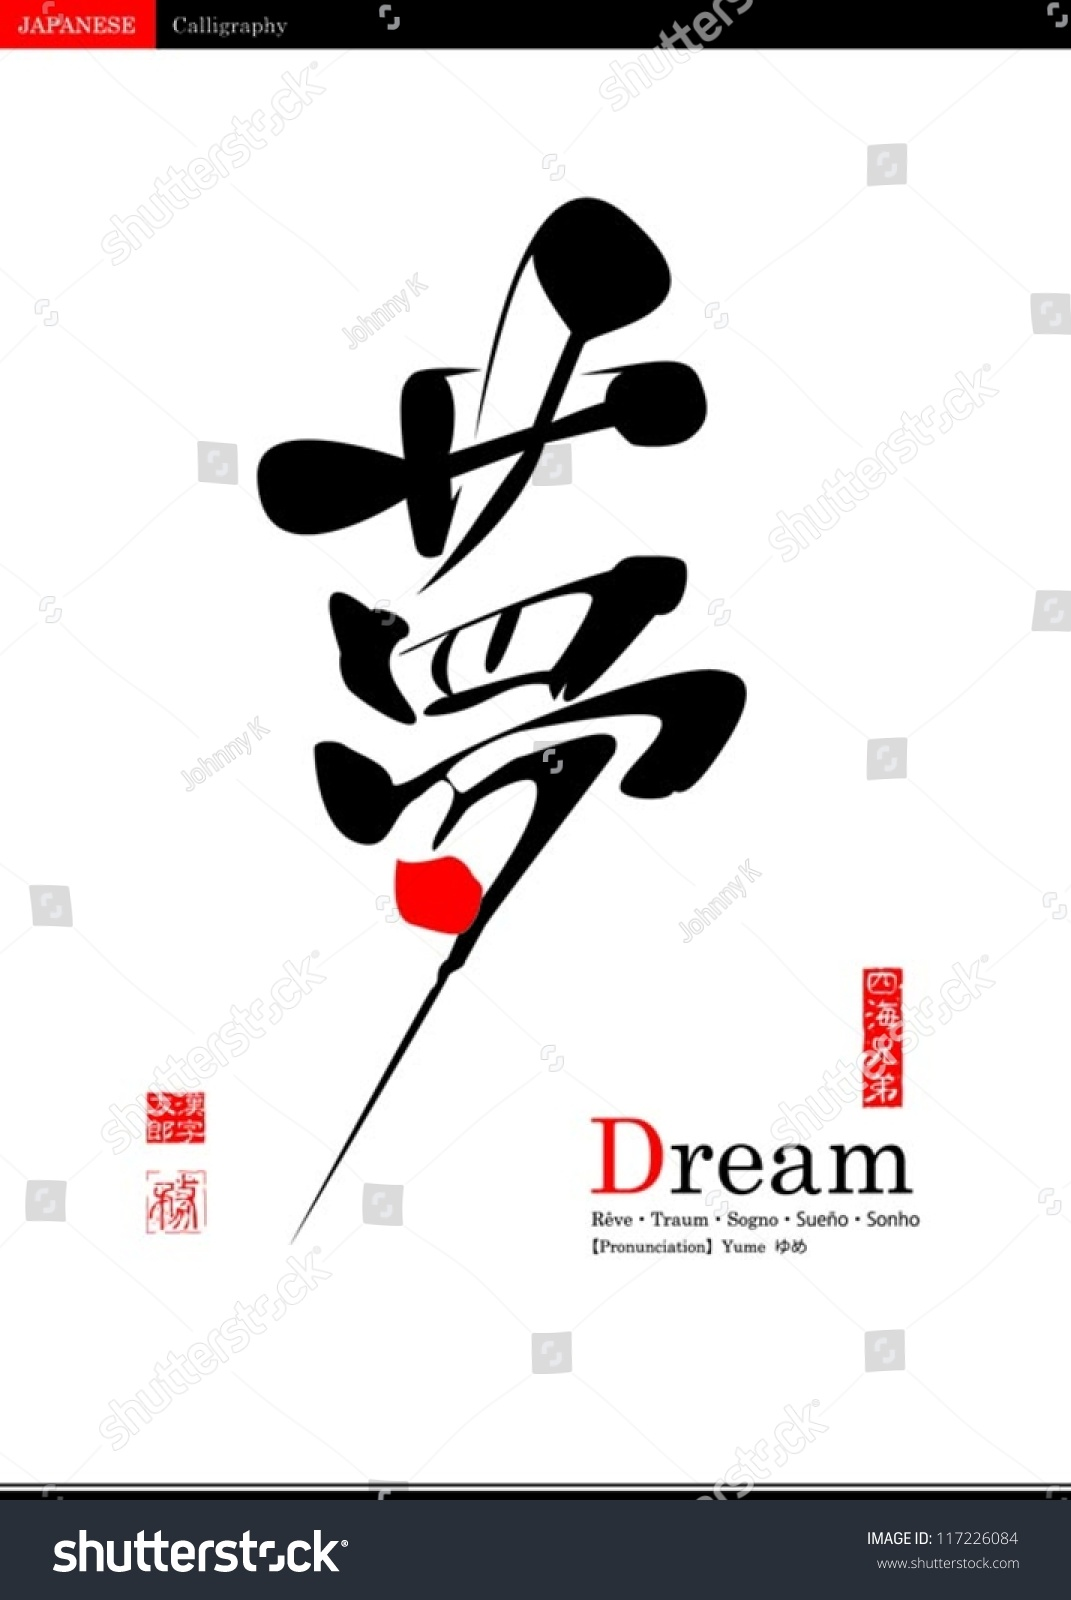 Japanese calligraphy dream vector image stock